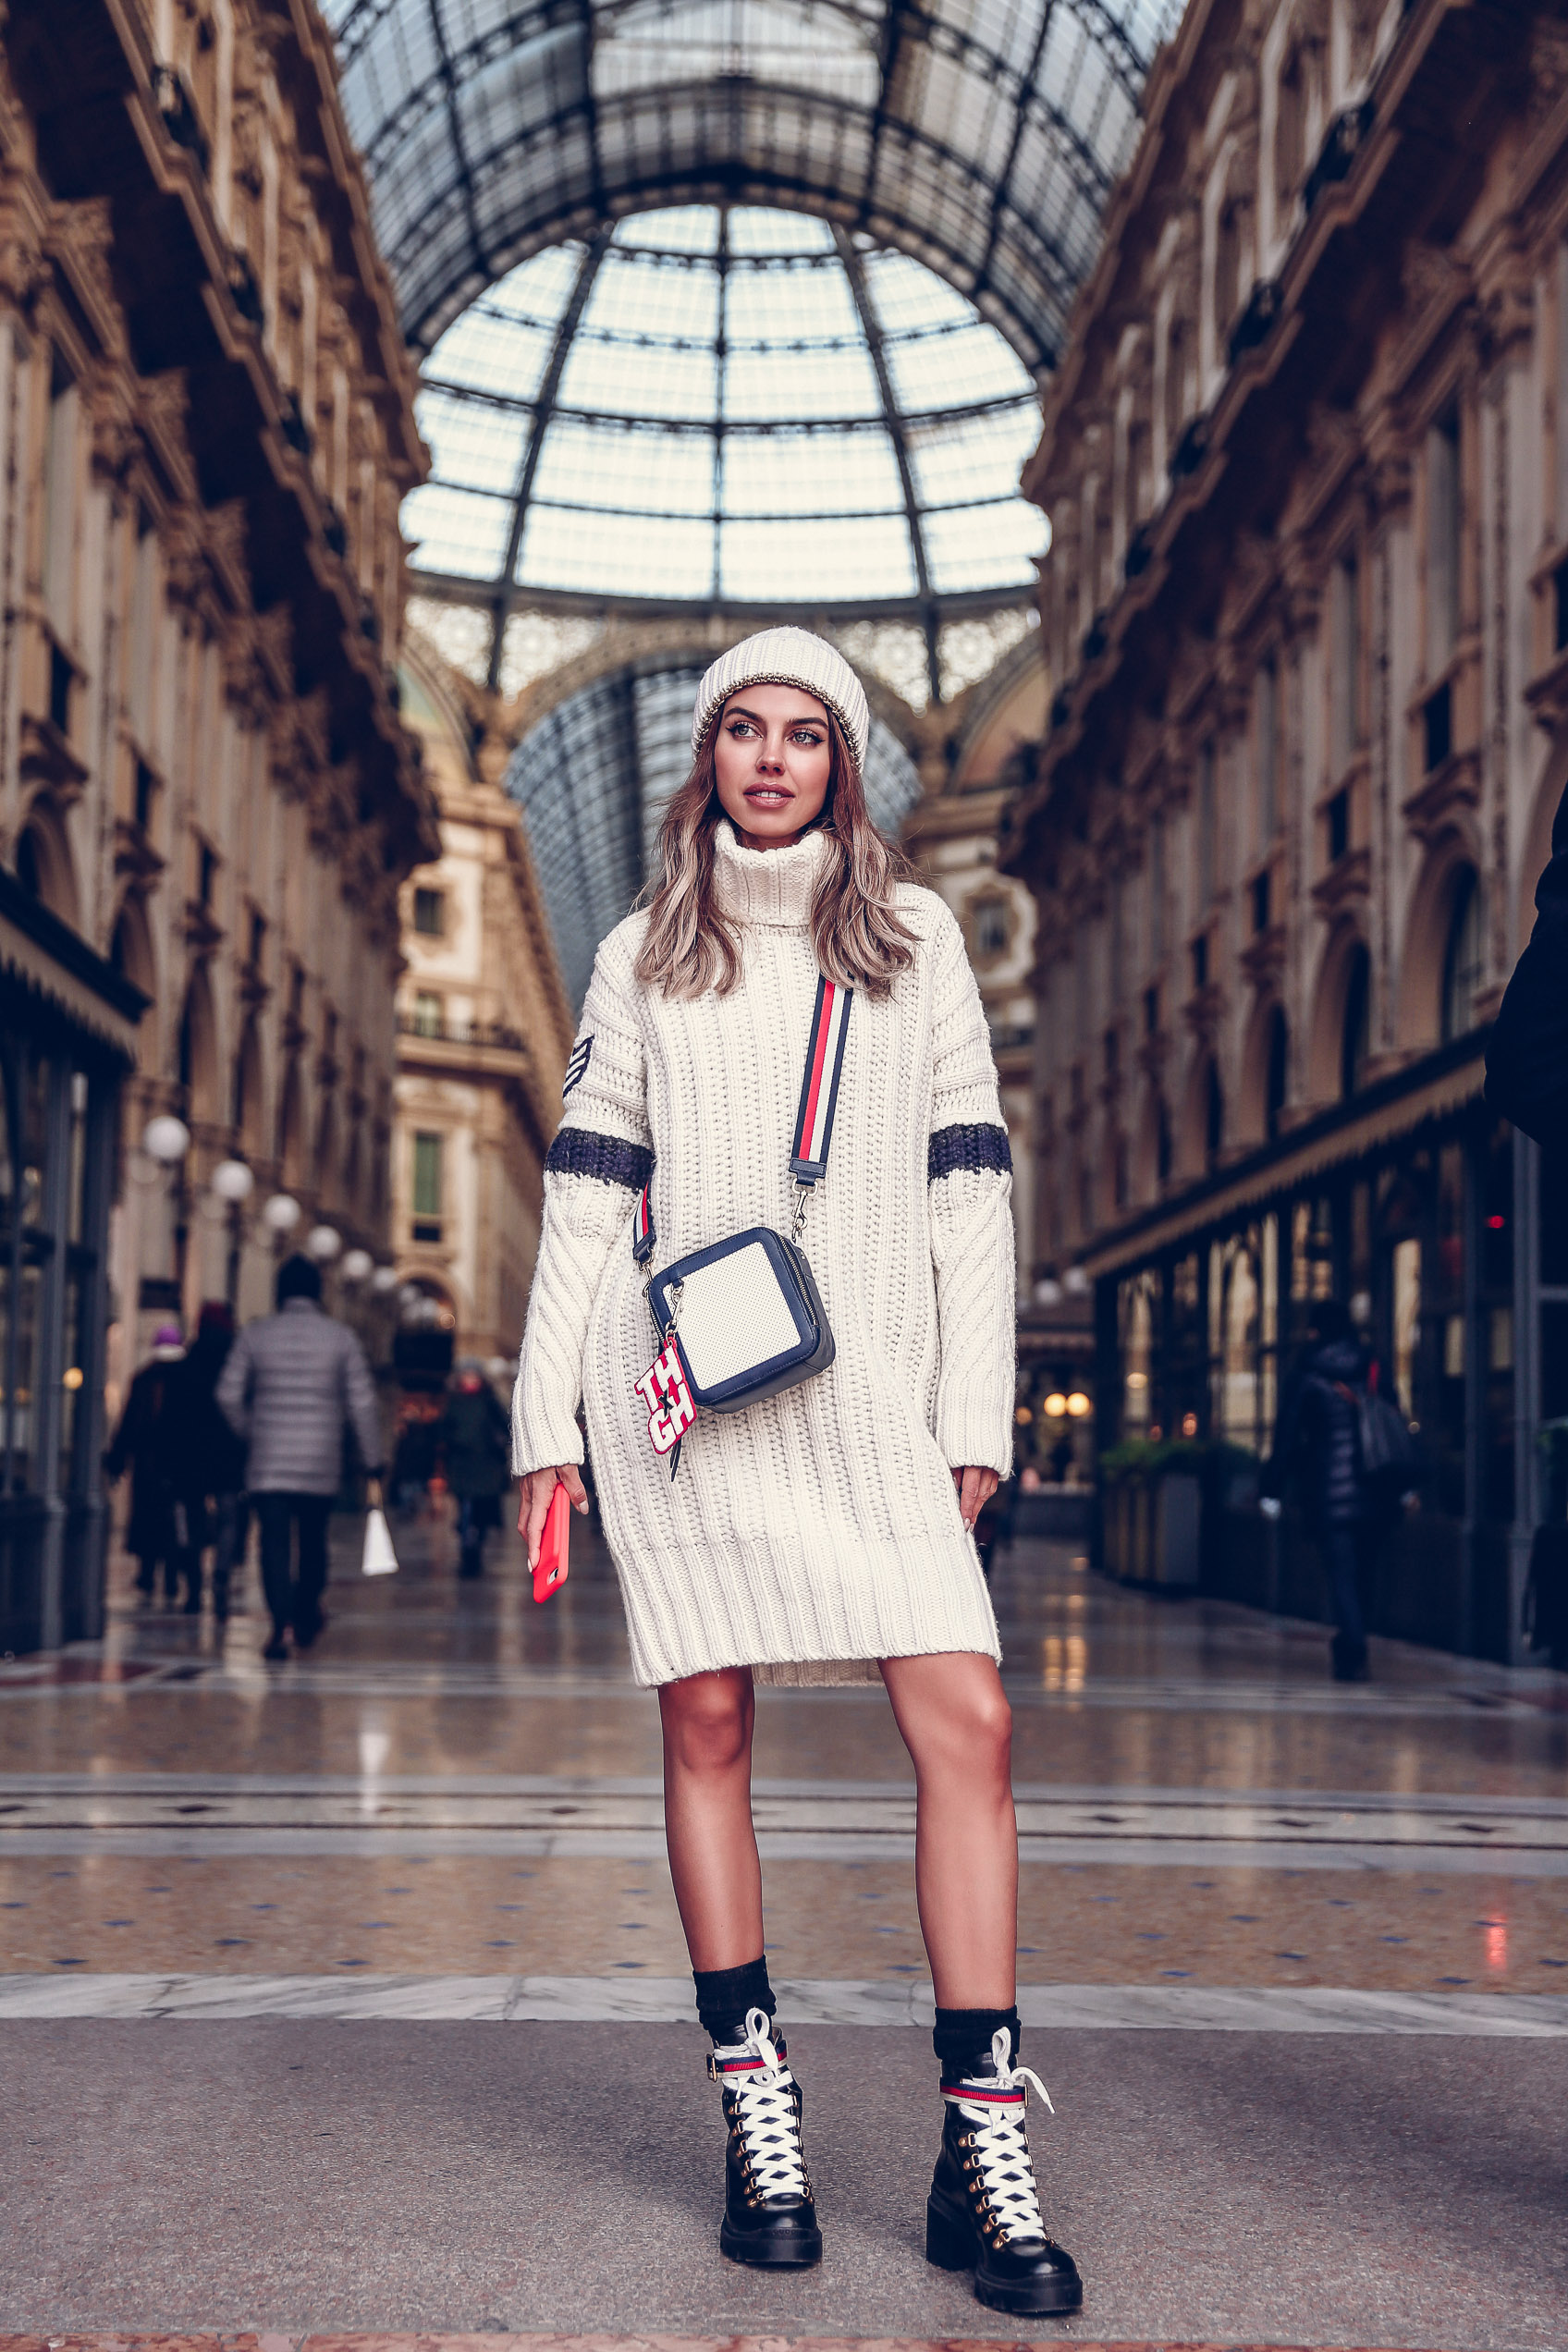 Milan Fashion Week: Tommy Hilfiger & Trussardi